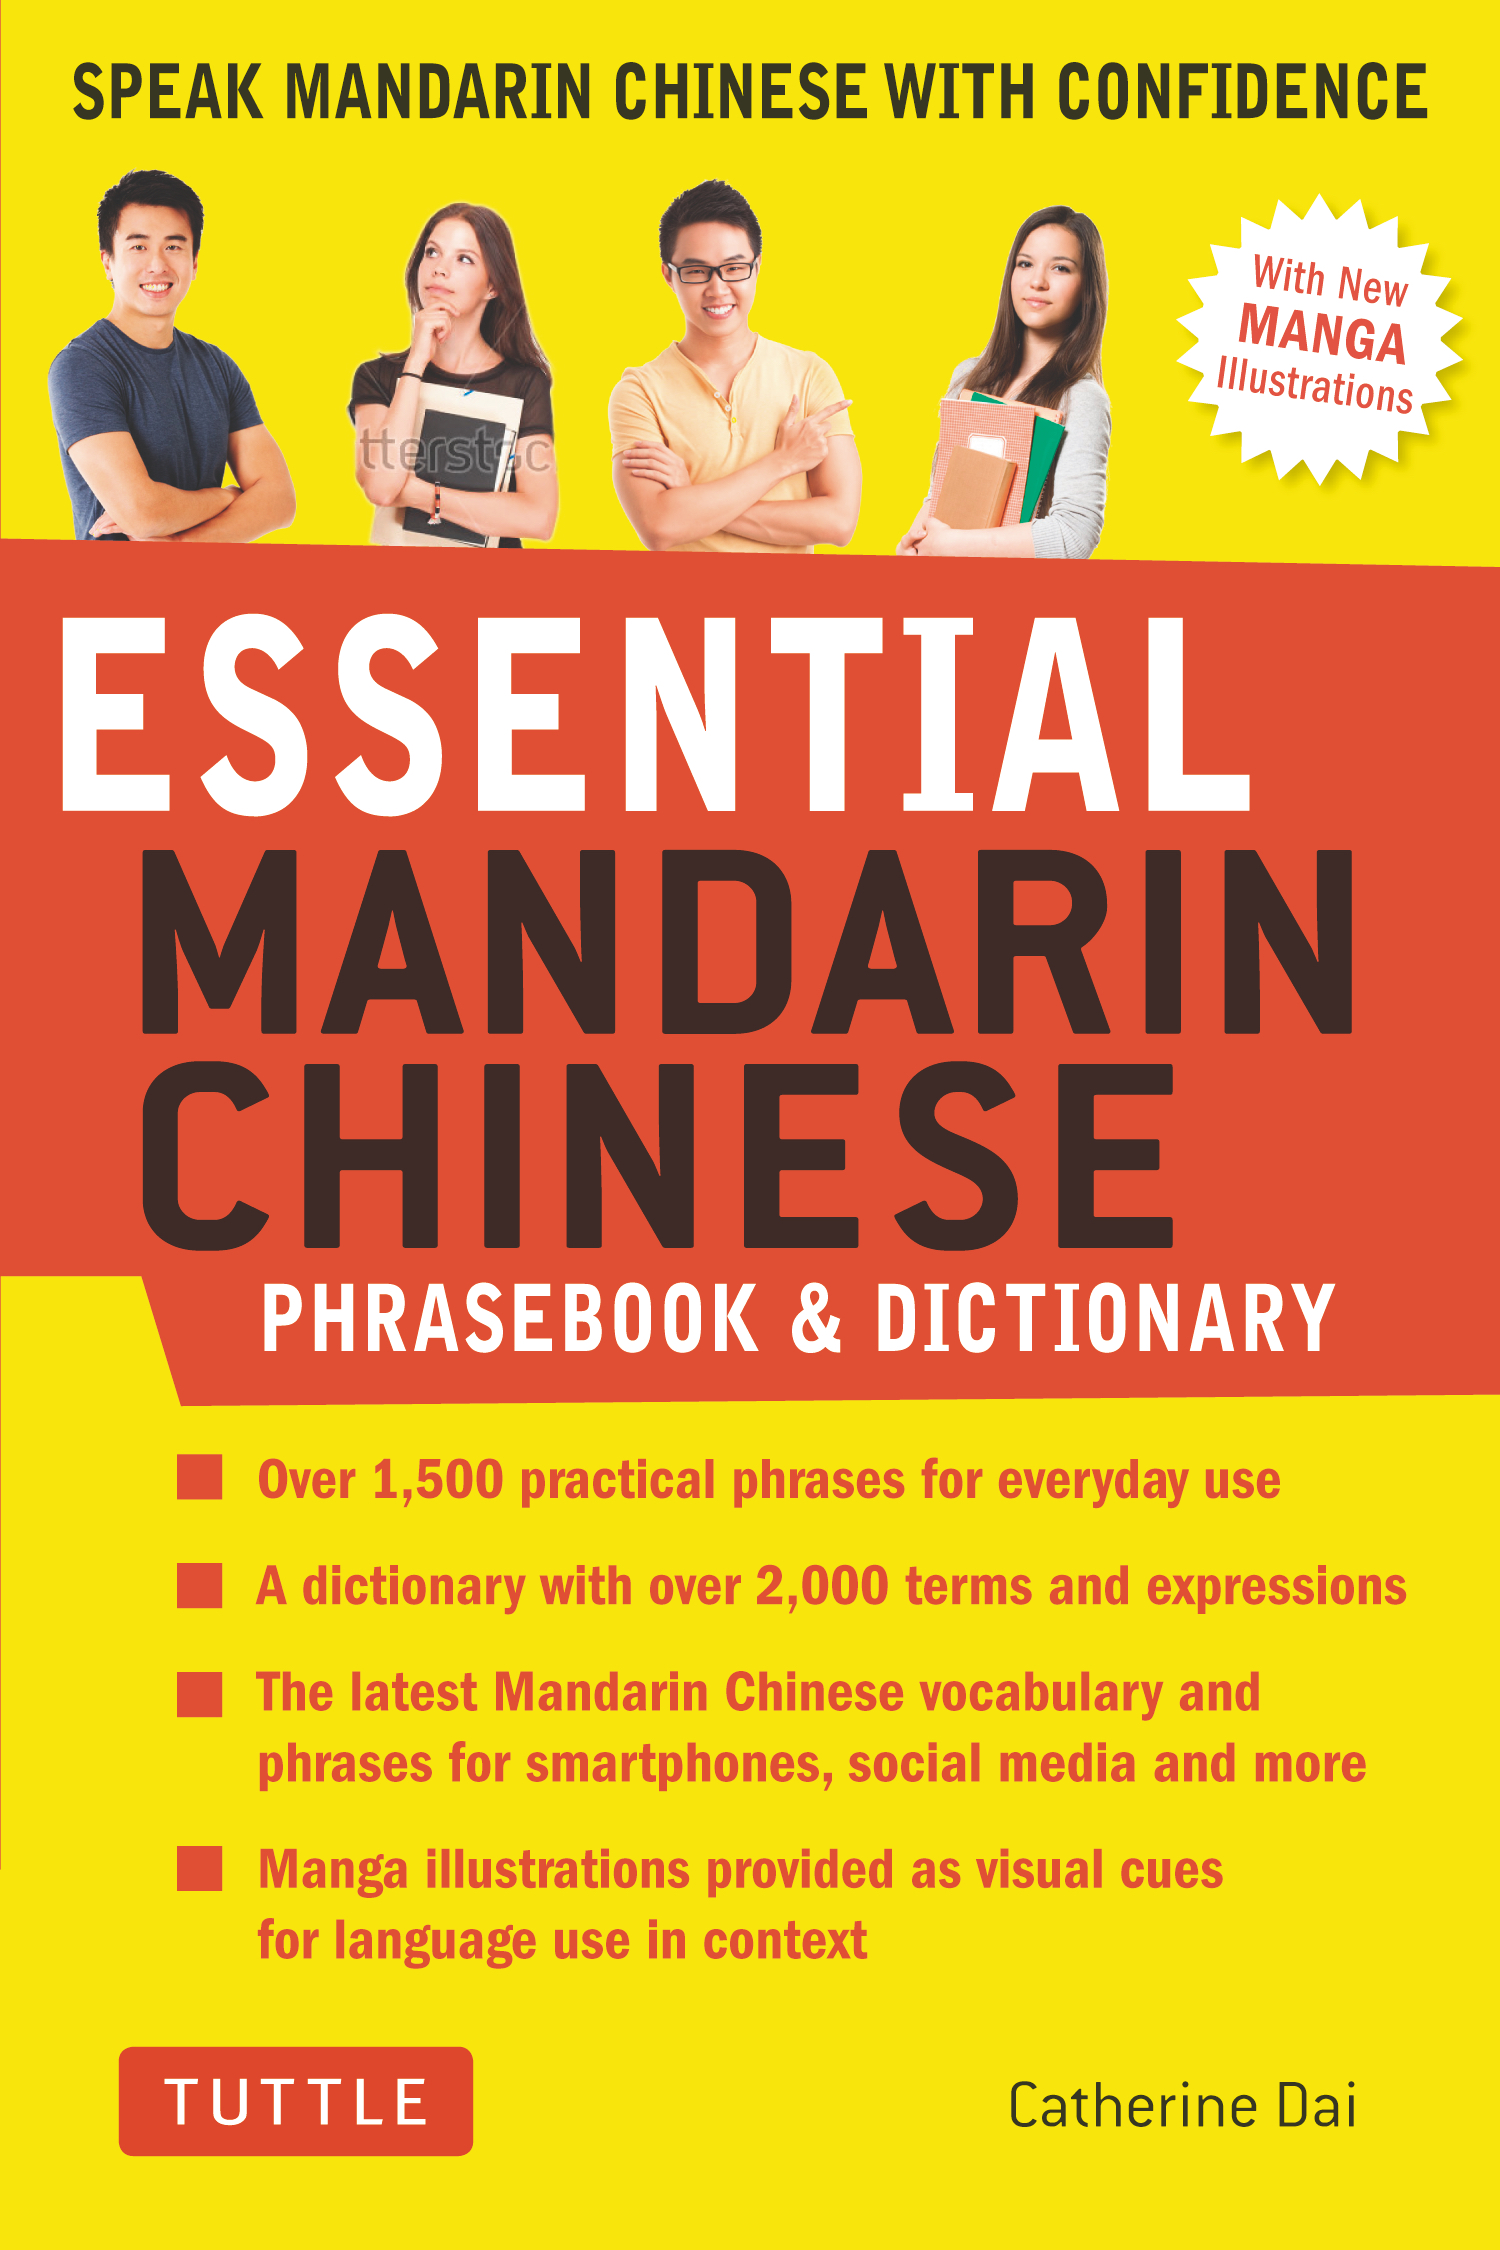 mandarin dictionary Chinese dictionaries date back over two millennia to the han dynasty, which is a  significantly  tps frequency dictionary of mandarin chinese: a study guide  to 2,500 characters and over 24,000 words and phrases raleigh, nc: lulu.